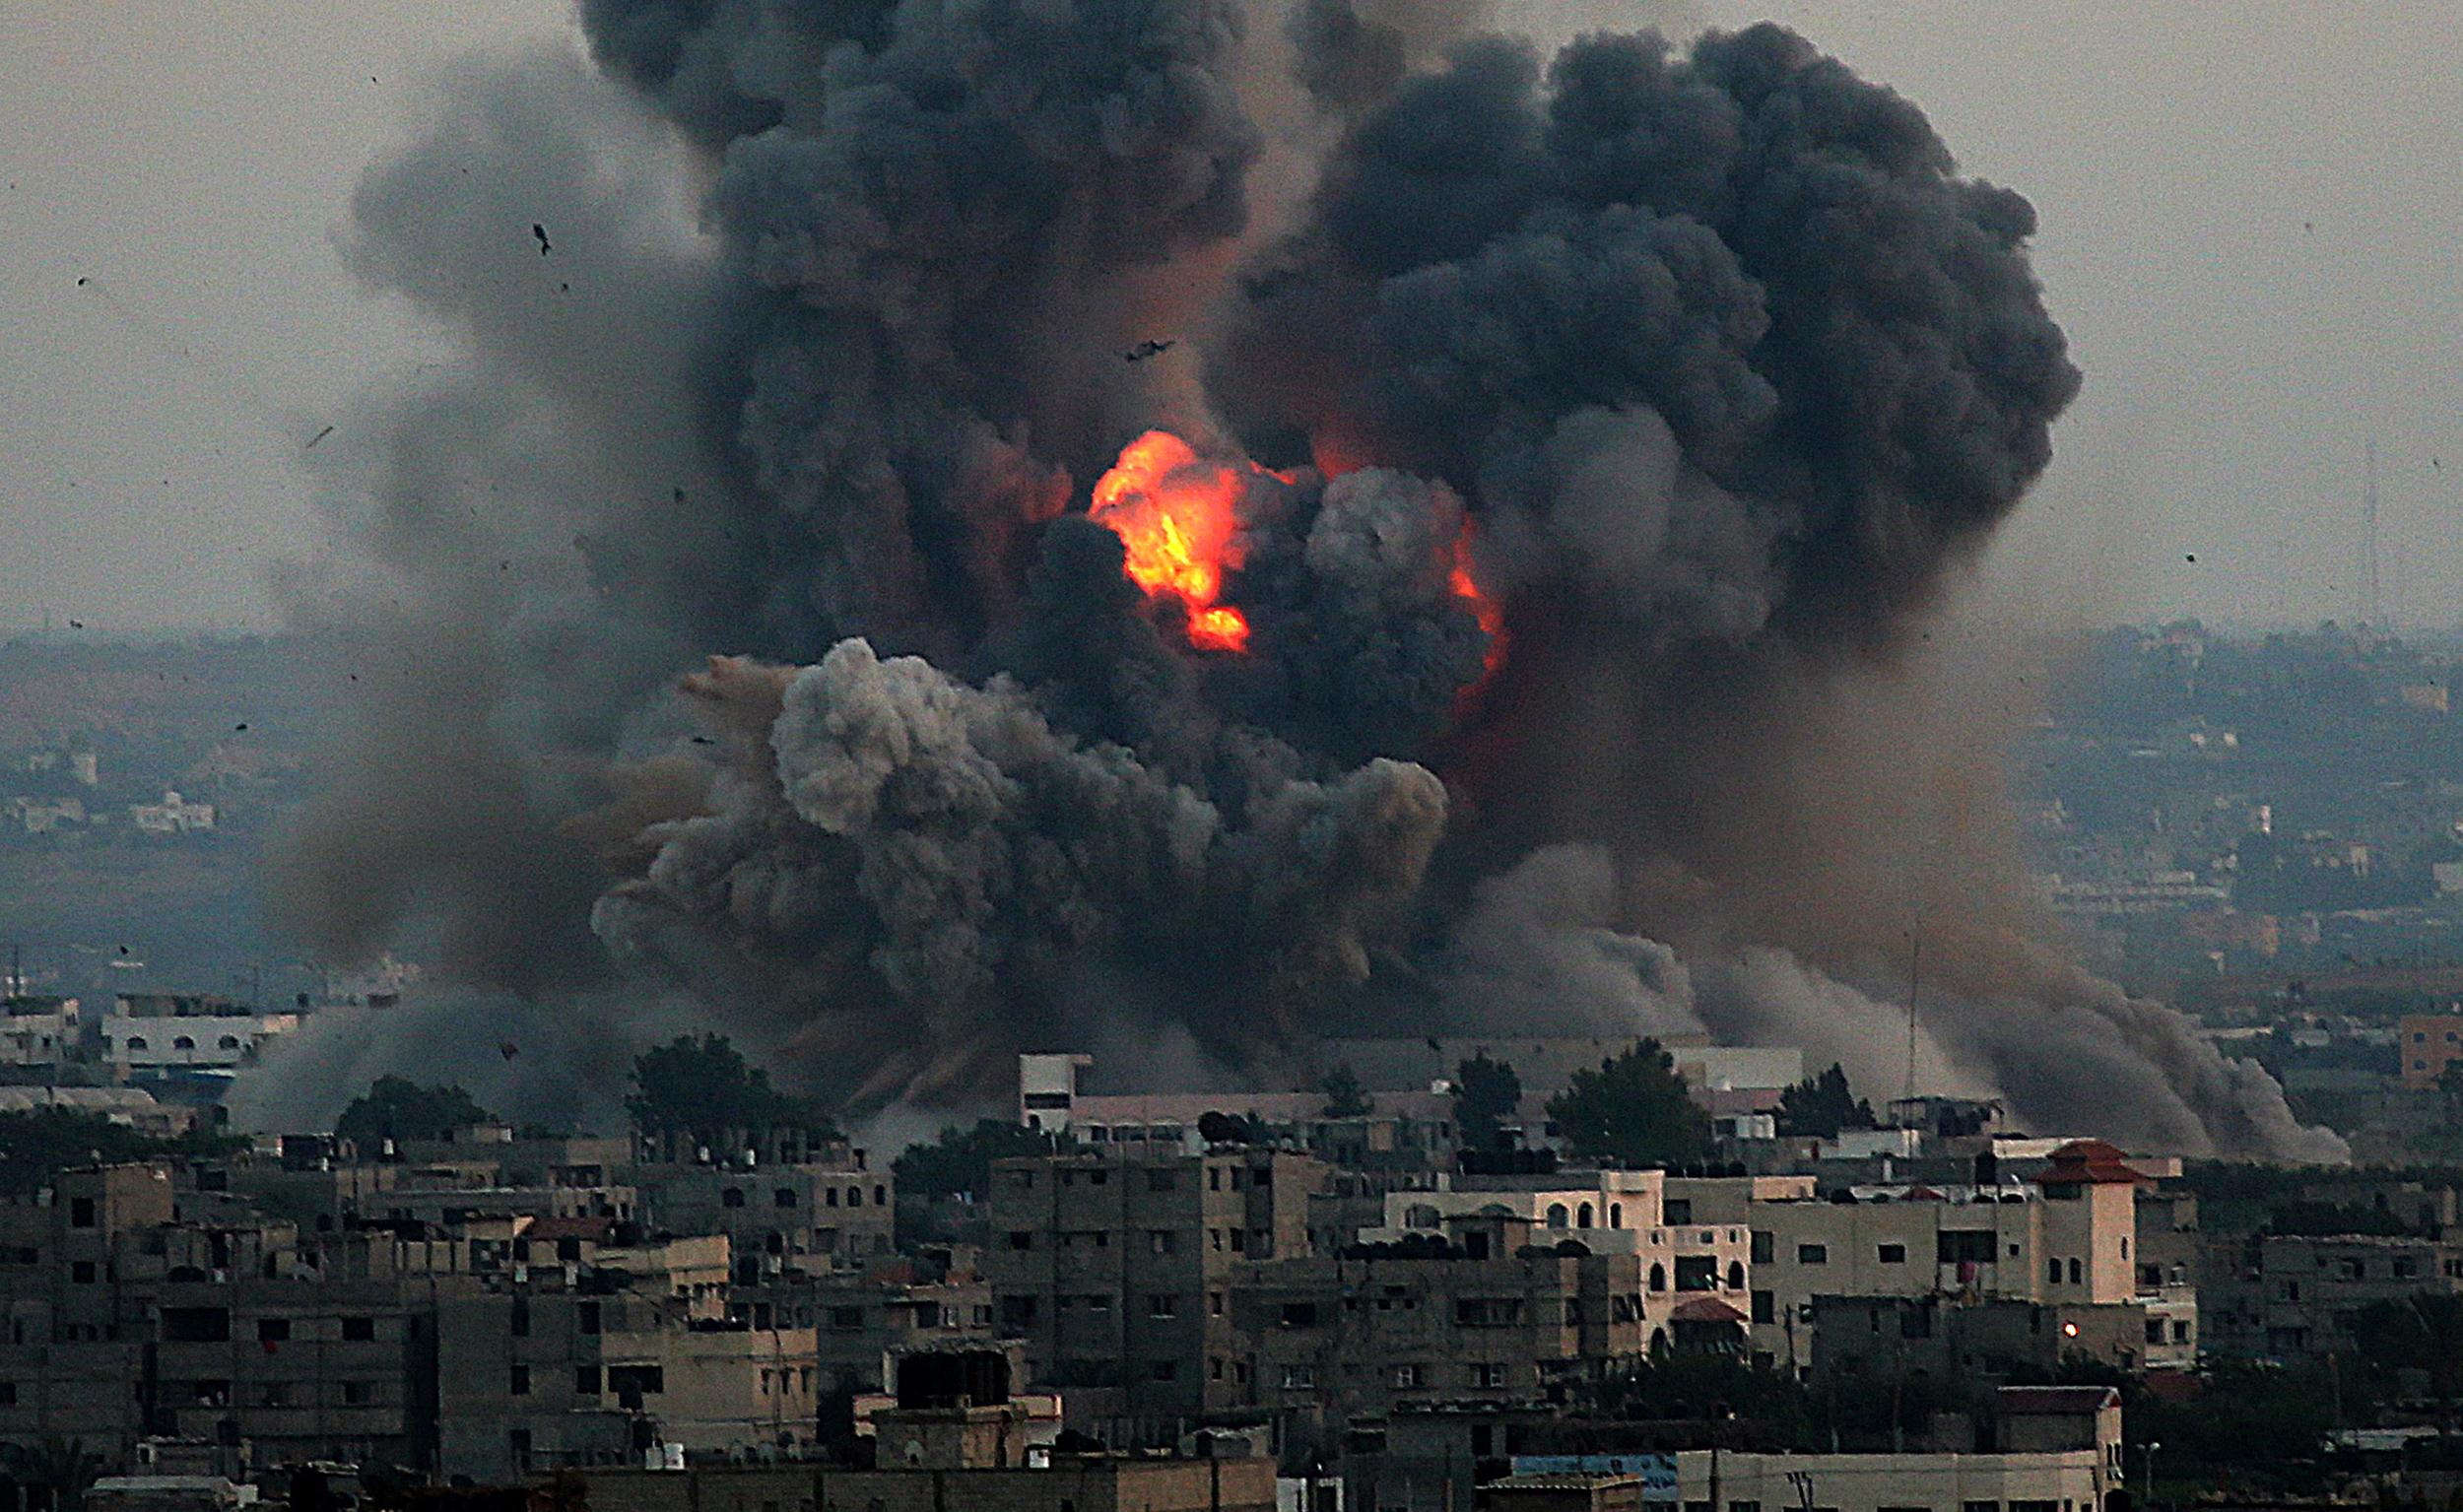 Image: Smoke rises after an attack of Israeli aircraft in the South of Gaza City